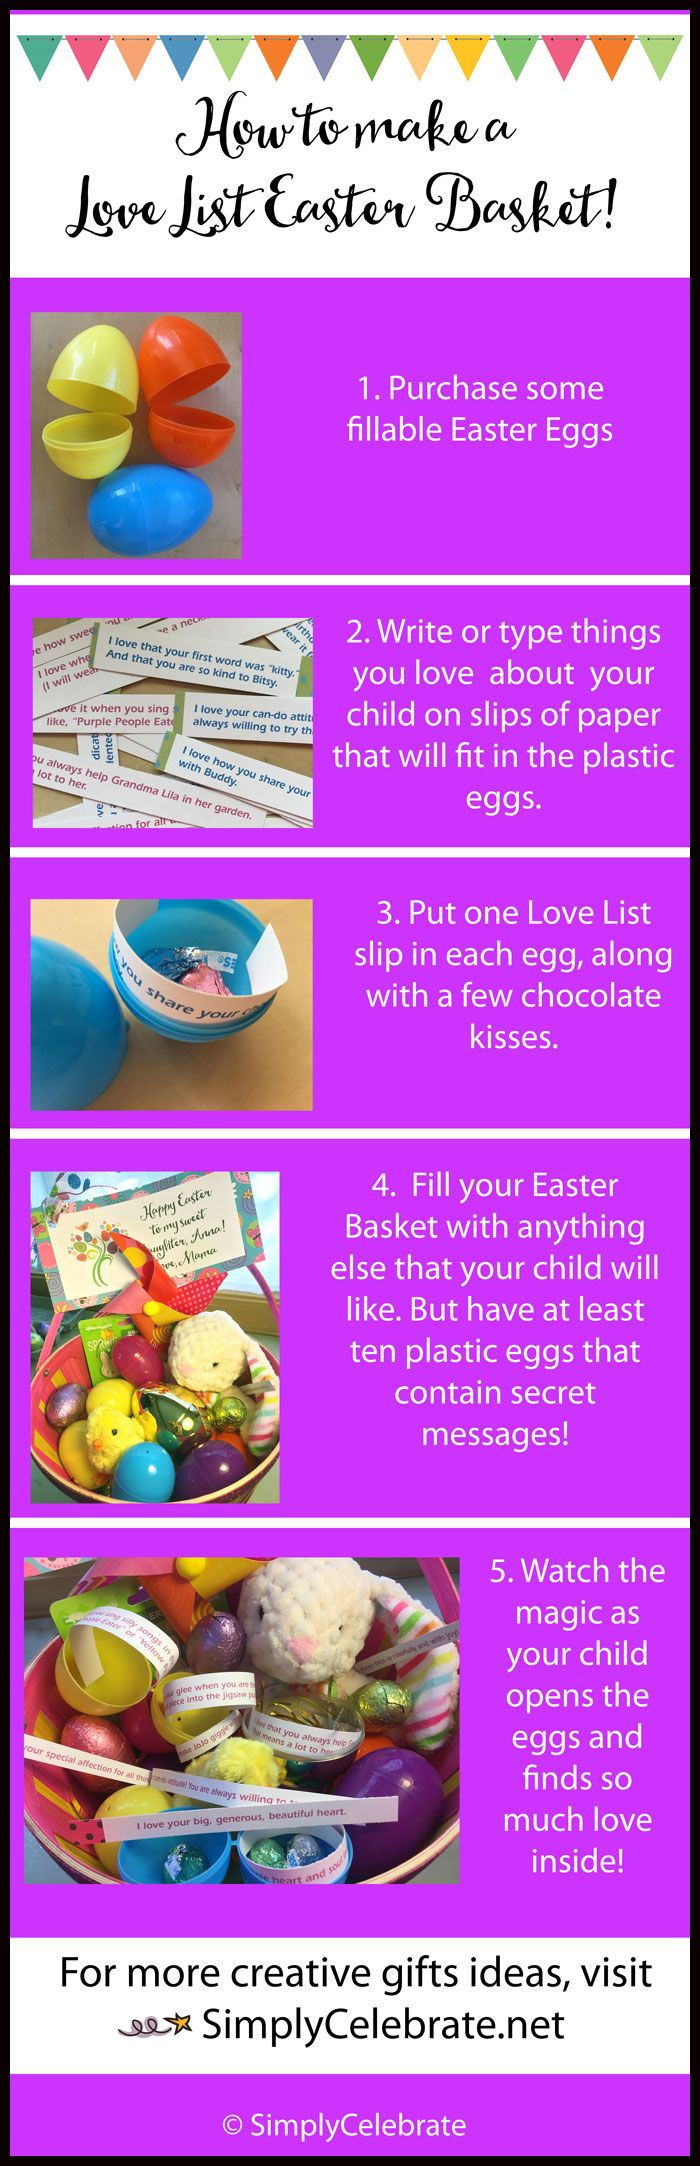 Make a Love List Easter Basket!   It's easy to go the extra mile to make your child's (or child-at-heart's!) Easter Basket extra special. Add a Love List!     All you have to do is bra...